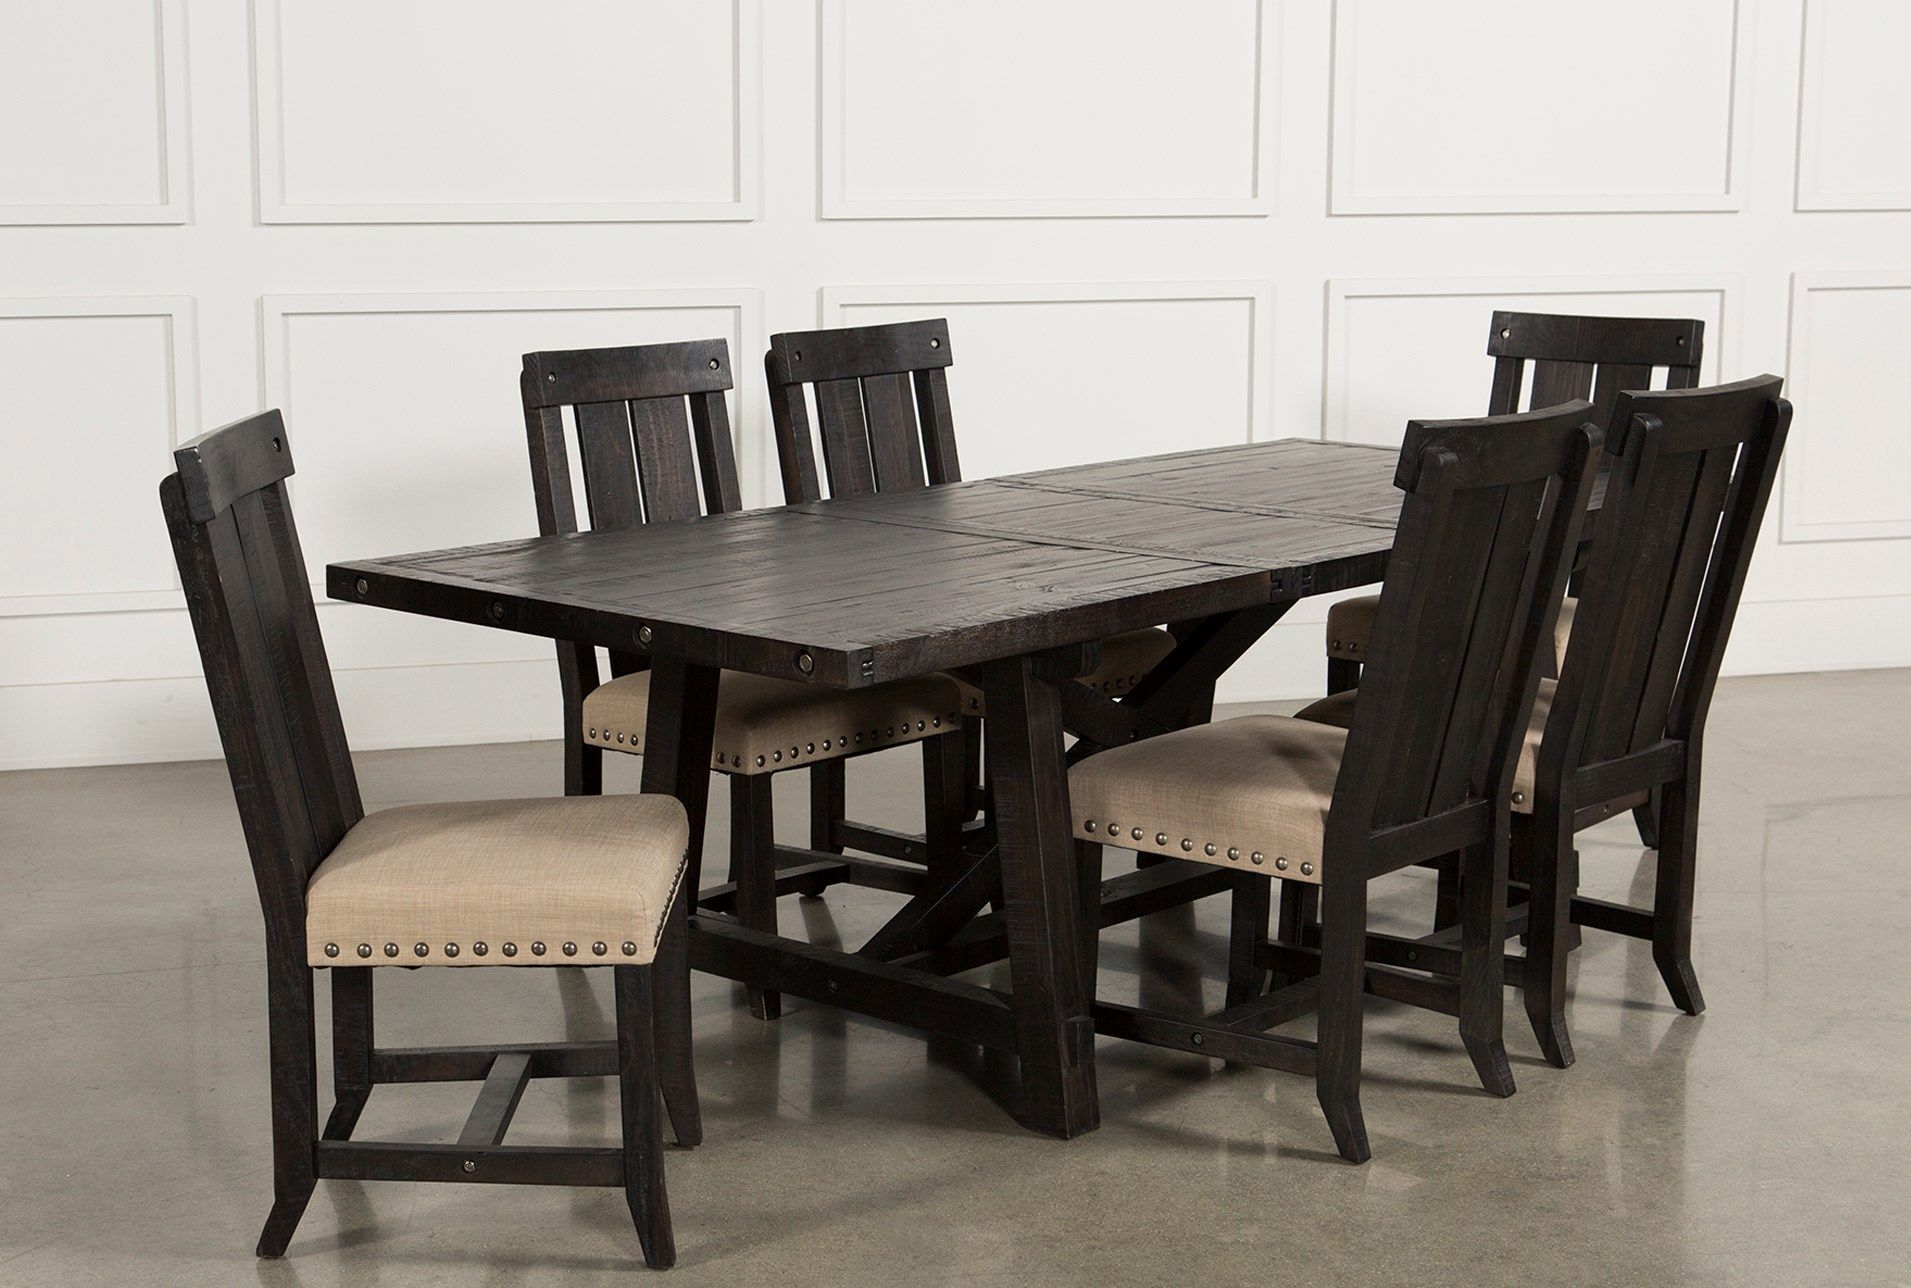 448ee06cf7 Jaxon 7 Piece Rectangle Dining Set W/Wood Chairs | Kitchen | Dining ...